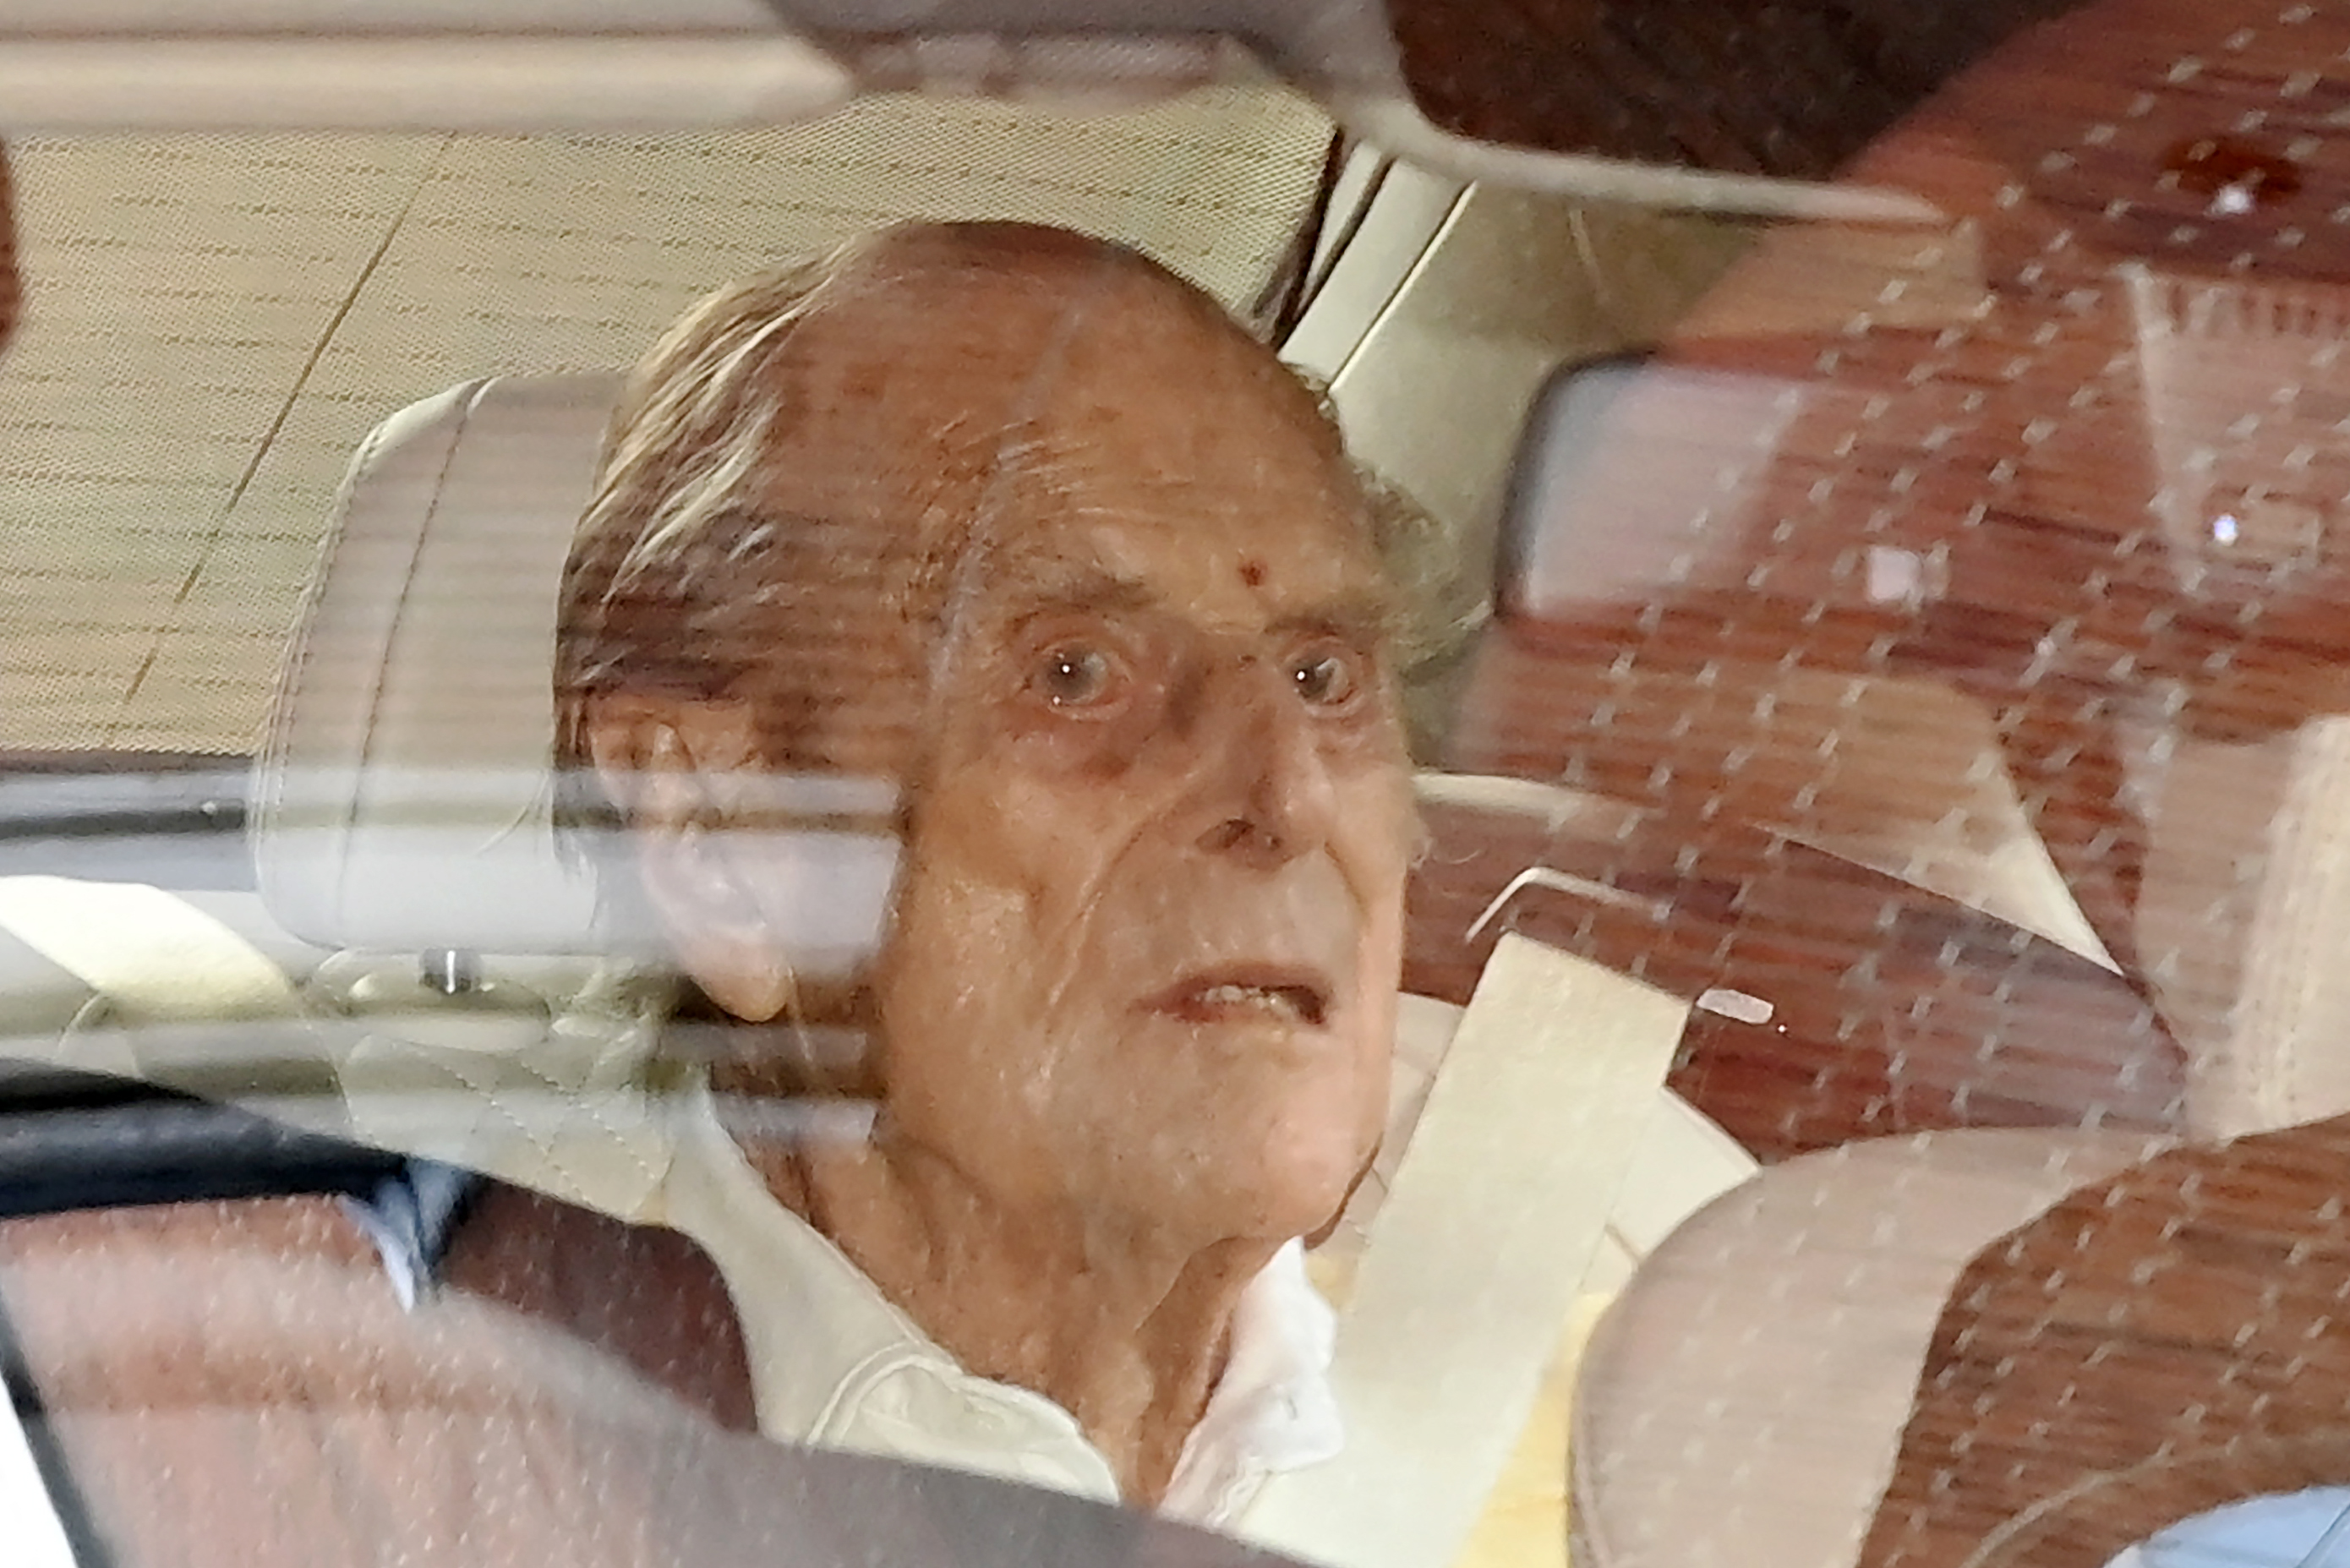 <p>Britain's Prince Philip, Duke of Edinburgh leaves King Edward VII's Hospital in central London on March 16, 2021. - The 99-year-old husband of Queen Elizabeth II was in hospital with a heart condition. (Photo by DANIEL LEAL-OLIVAS / AFP) (Photo by DANIEL LEAL-OLIVAS/AFP via Getty Images)</p>